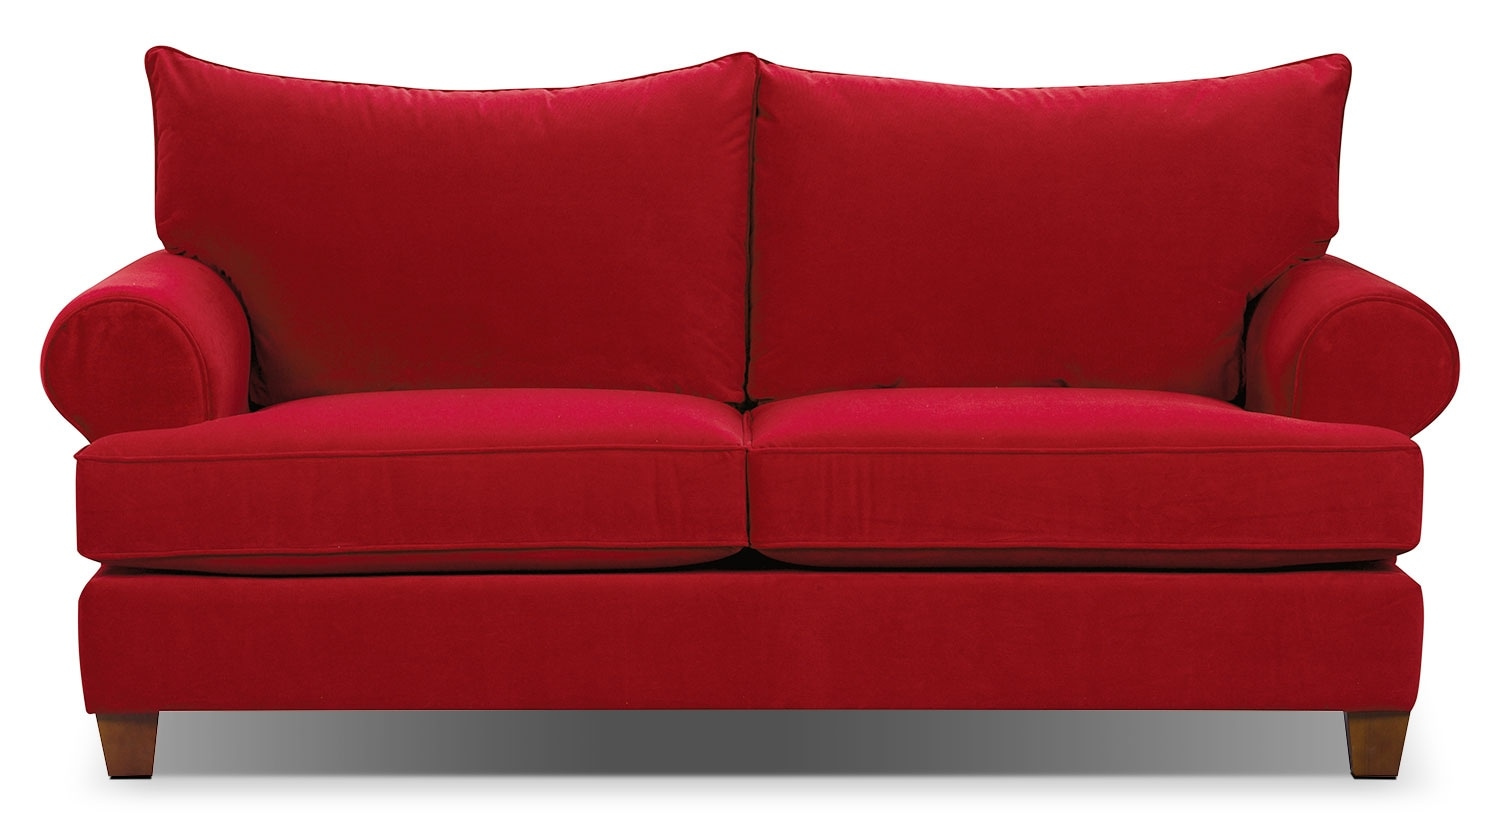 Red suede sofa red sofas couches fabric microfiber more thesofa Red sofas and loveseats